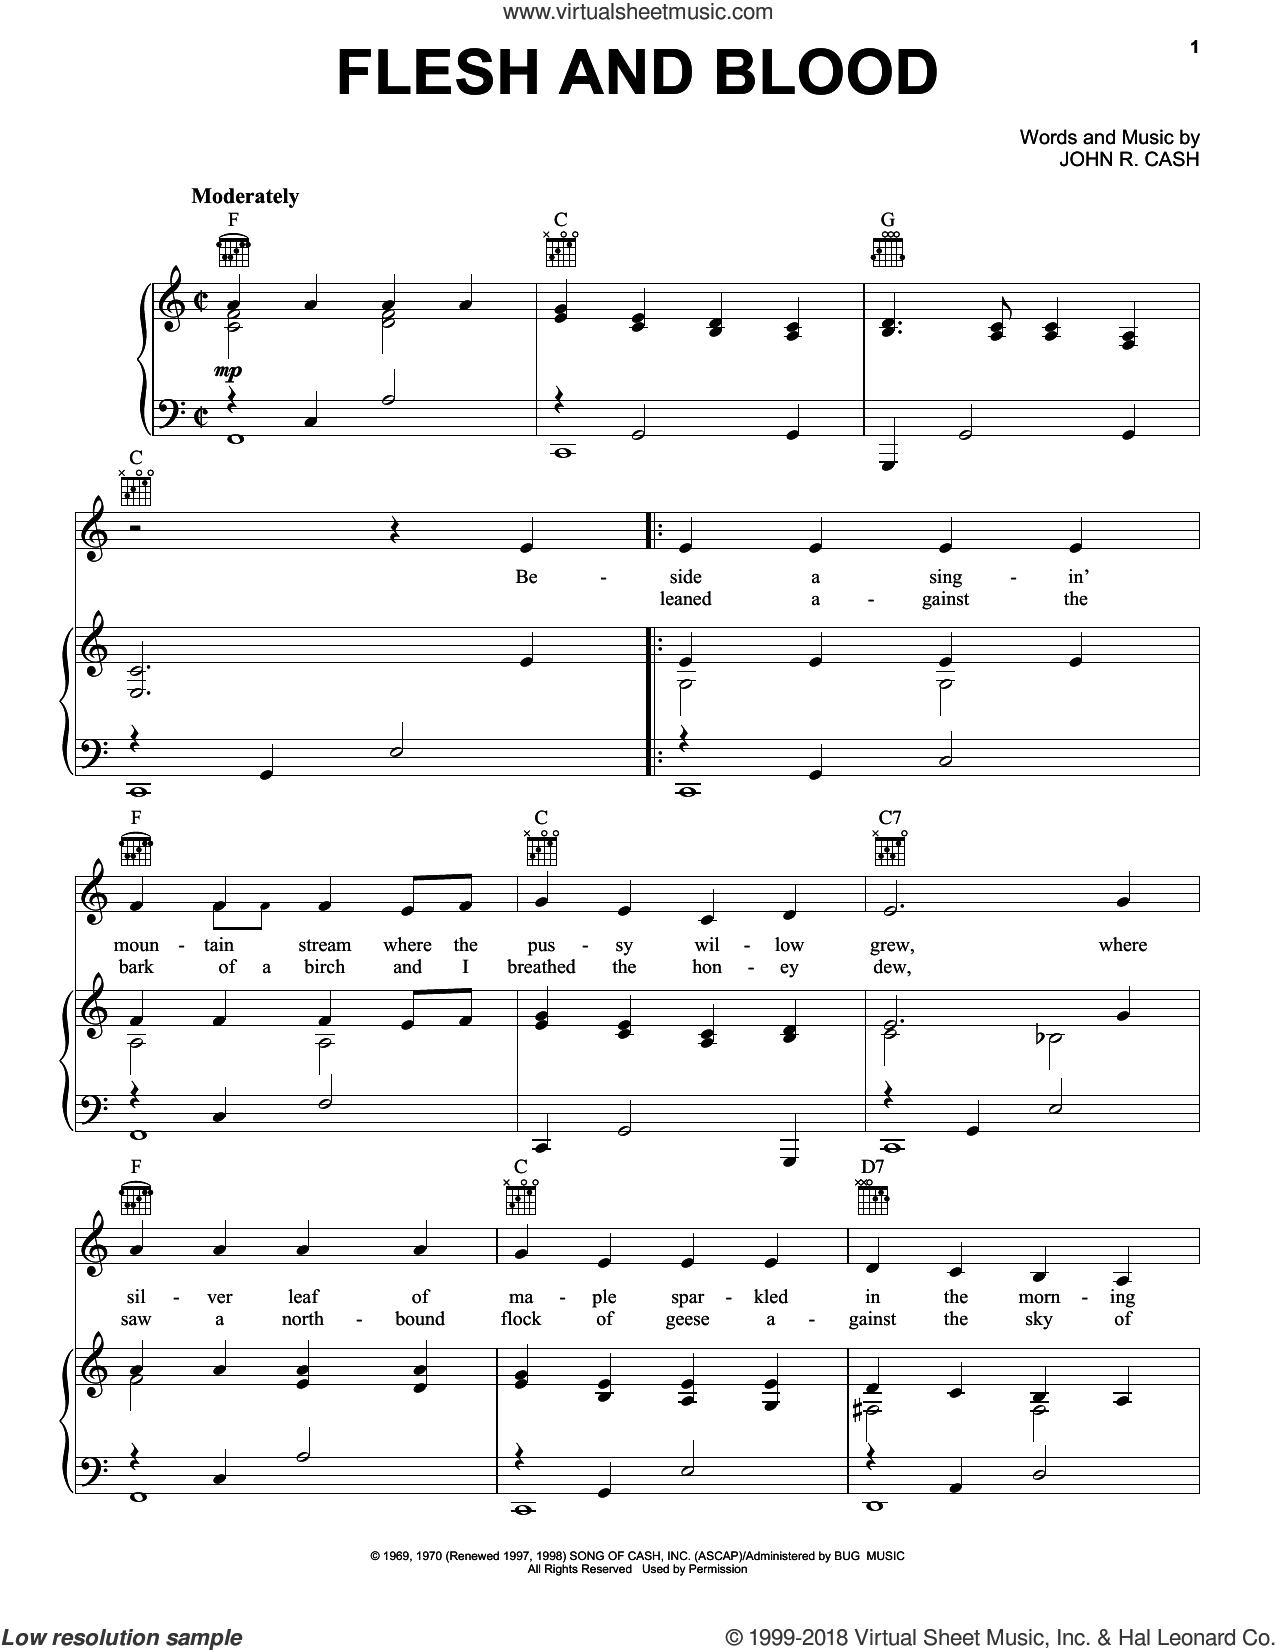 Flesh And Blood sheet music for voice, piano or guitar by Johnny Cash